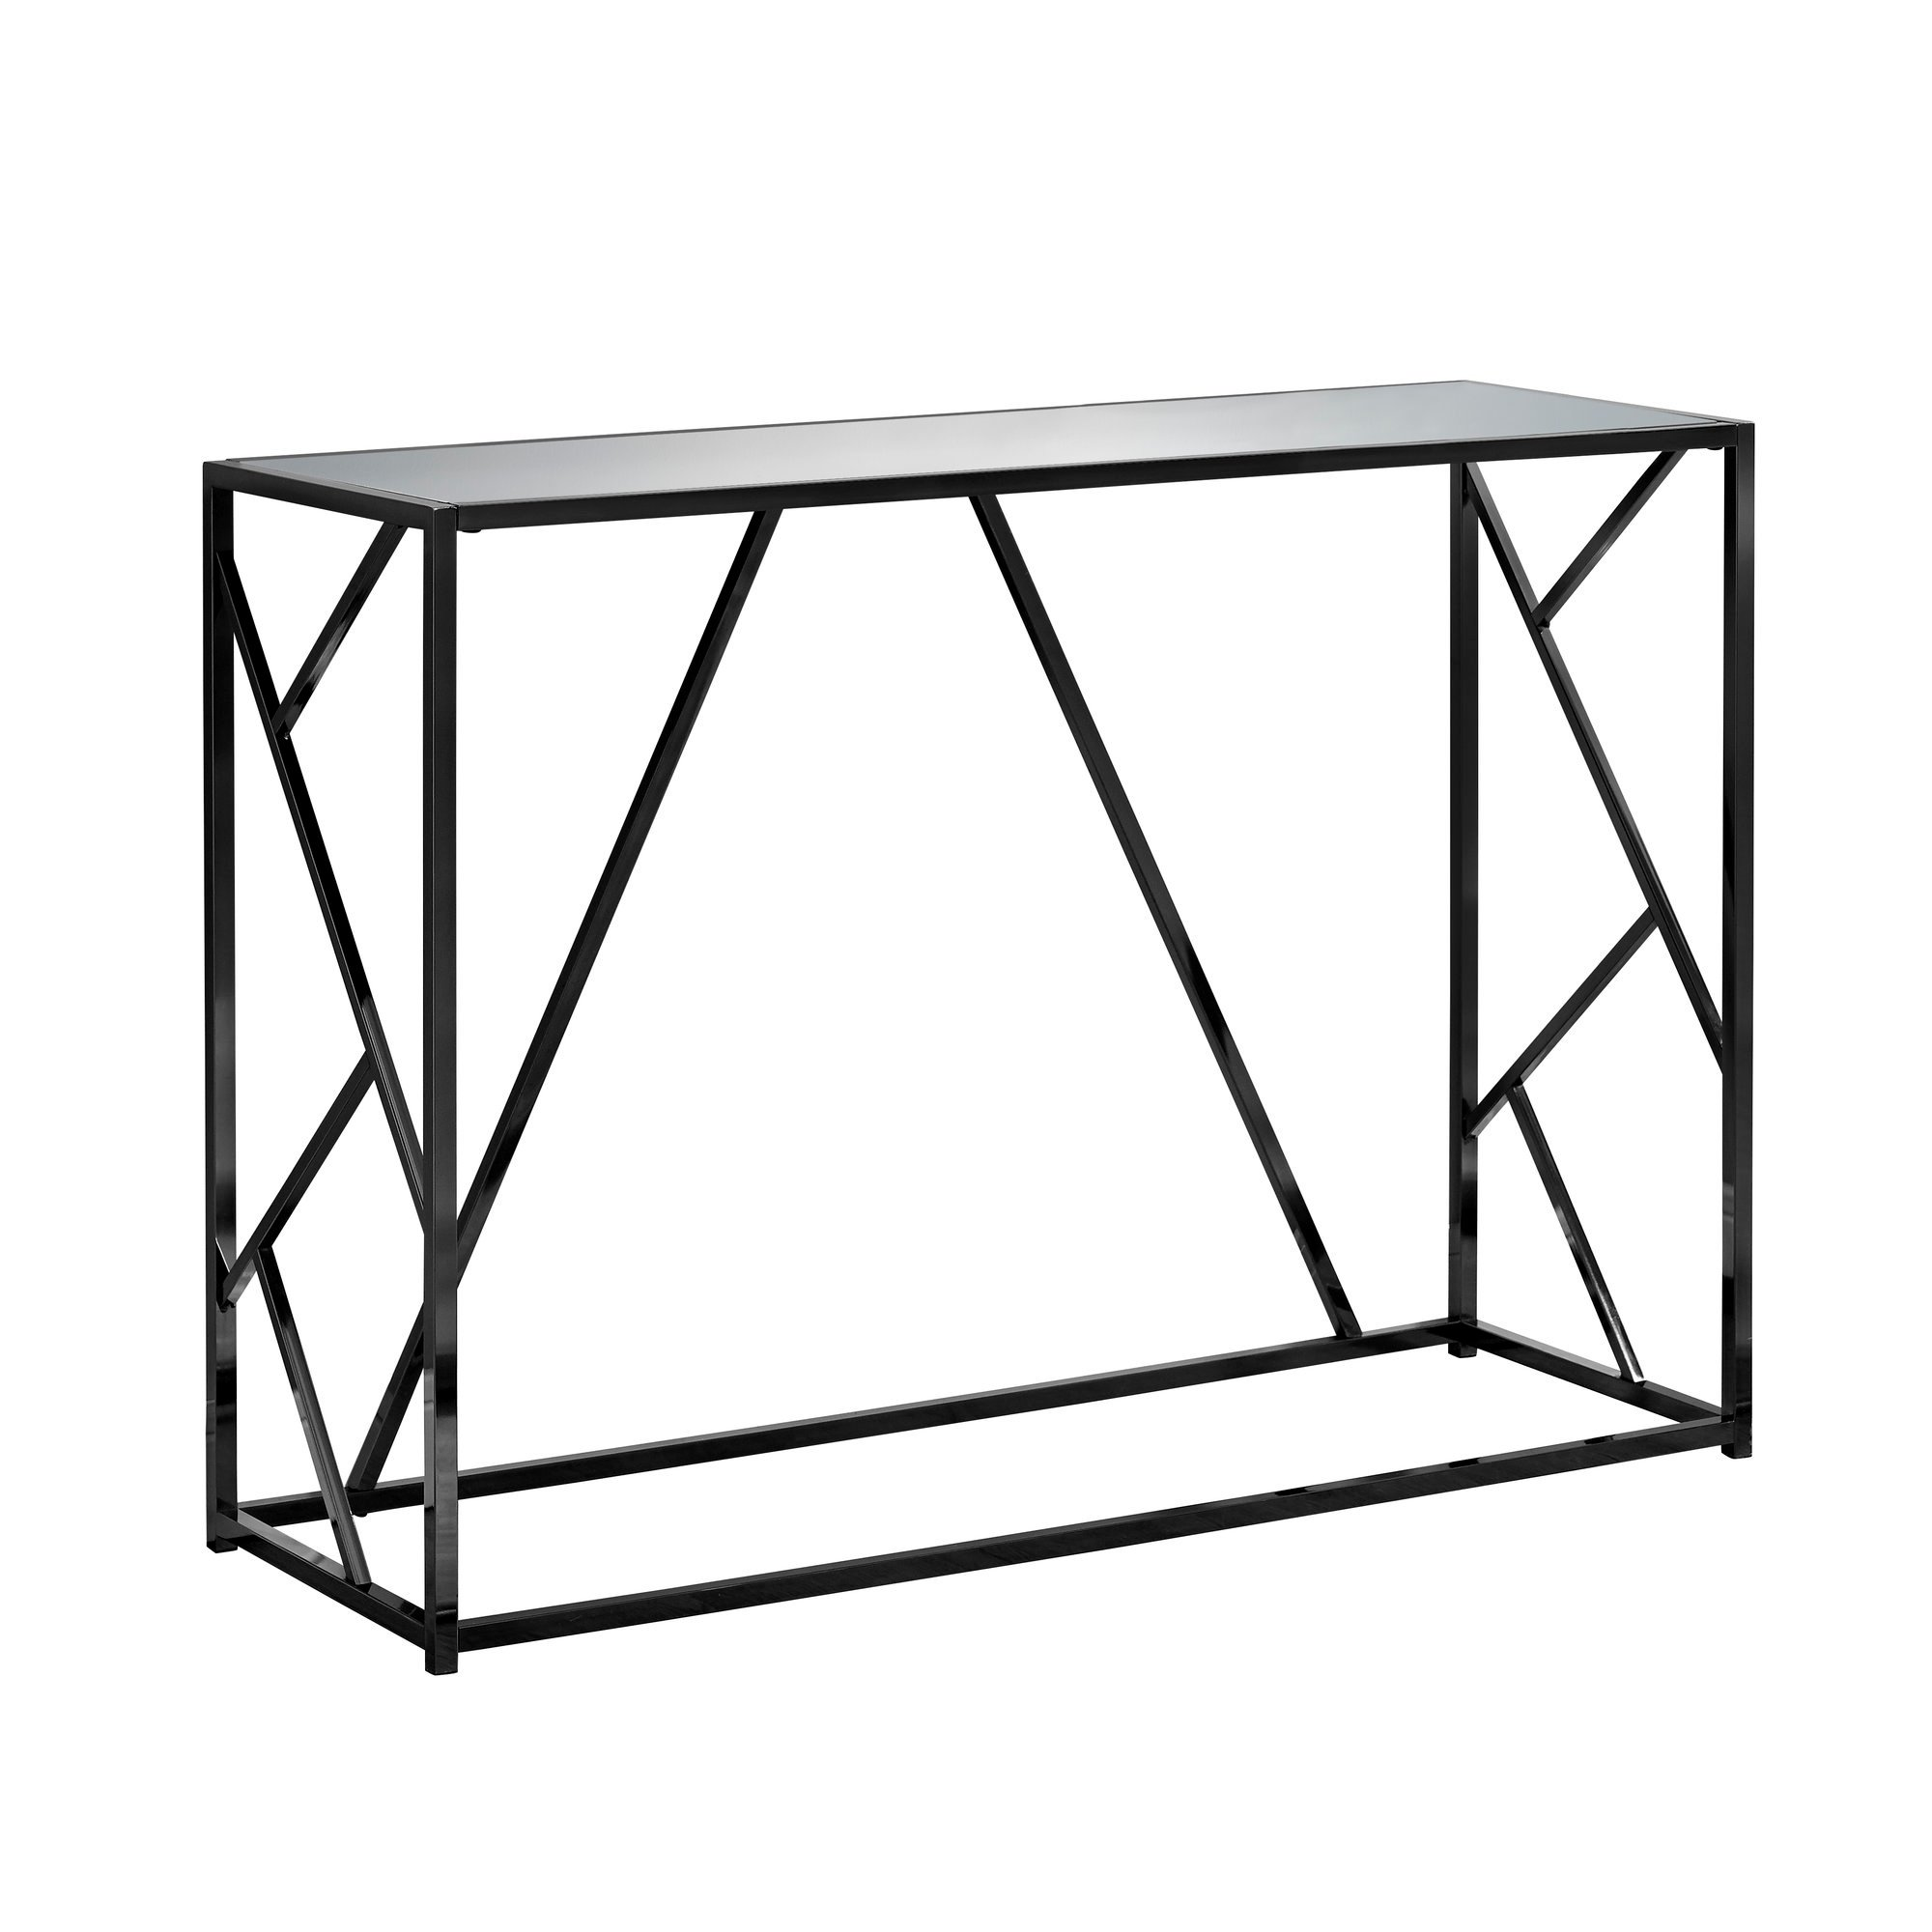 accent table black nickel metal mirror top free shipping today extra long shower curtain target modern dressers toronto argos coffee gold shelves inch wide nightstand pub style